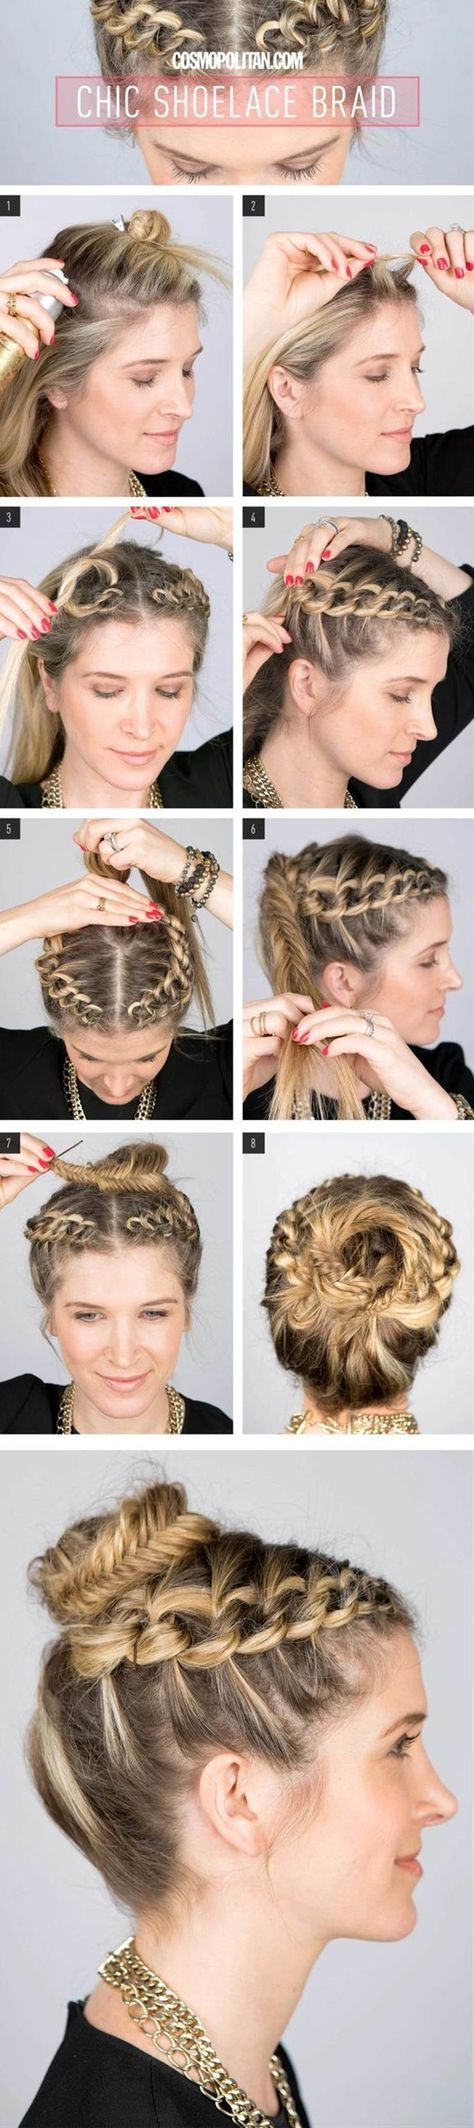 When it comes to styling hair, you simply cannot go wrong with braids. Whether your hair is long and thick or medium length and thin, whether it's summer or winter, braids are perfect for any time and situation. Need something fancy? Adorn your braid with pretty ribbons or hair bands. Looking for a casual yet feminine and elegant look for work? Just a simple braid will do. Truly, braids are incredibly versatile, practical and a little boring. There are just so many times you can try a…